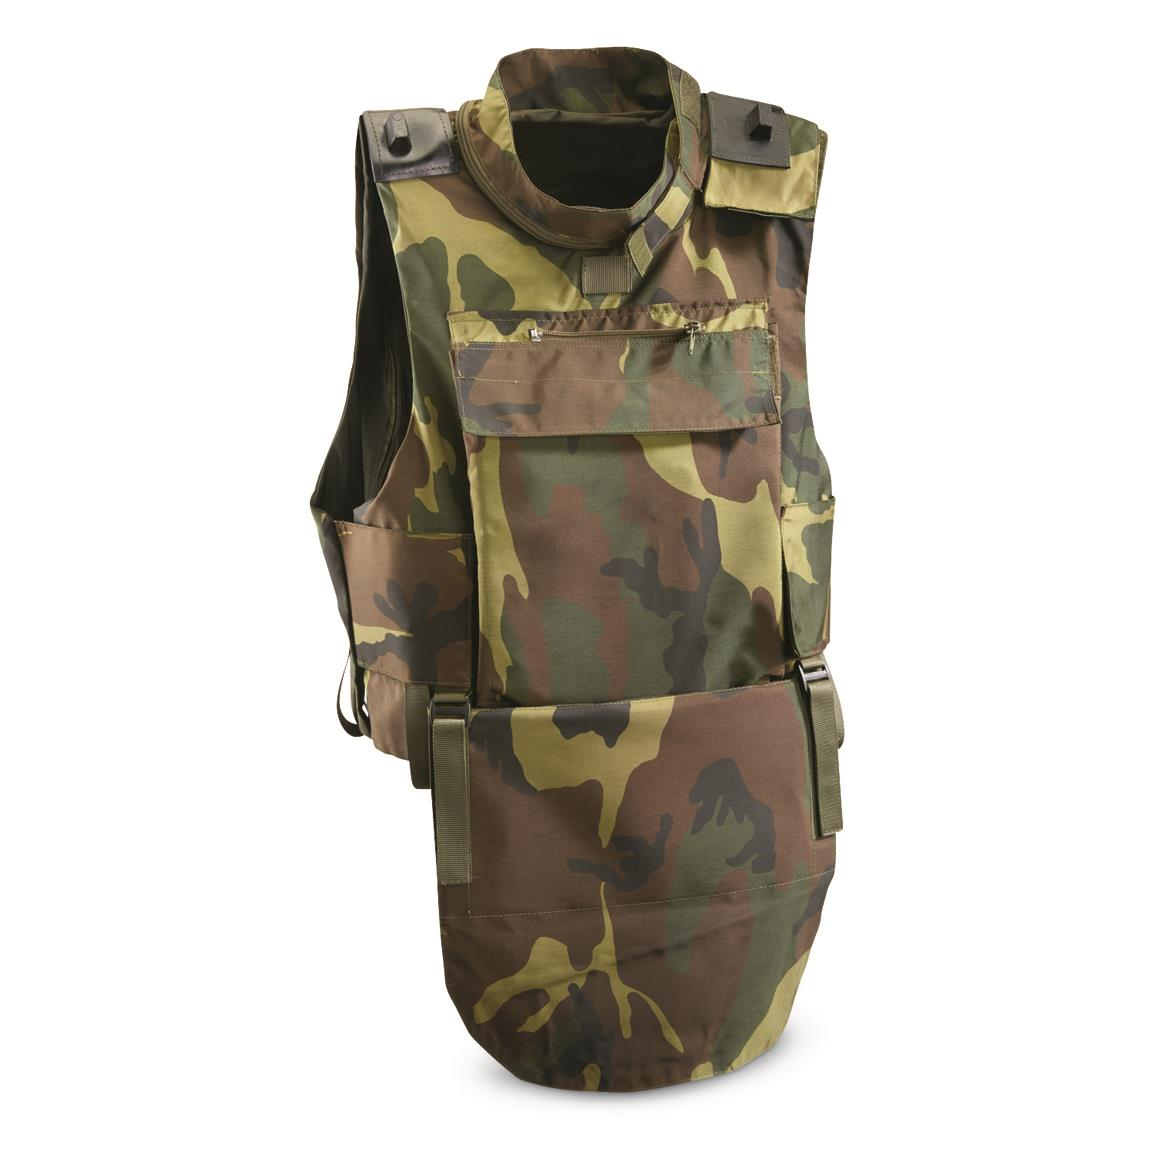 Italian Military Surplus Woodland Tactical Plate Carrier Vest, Used